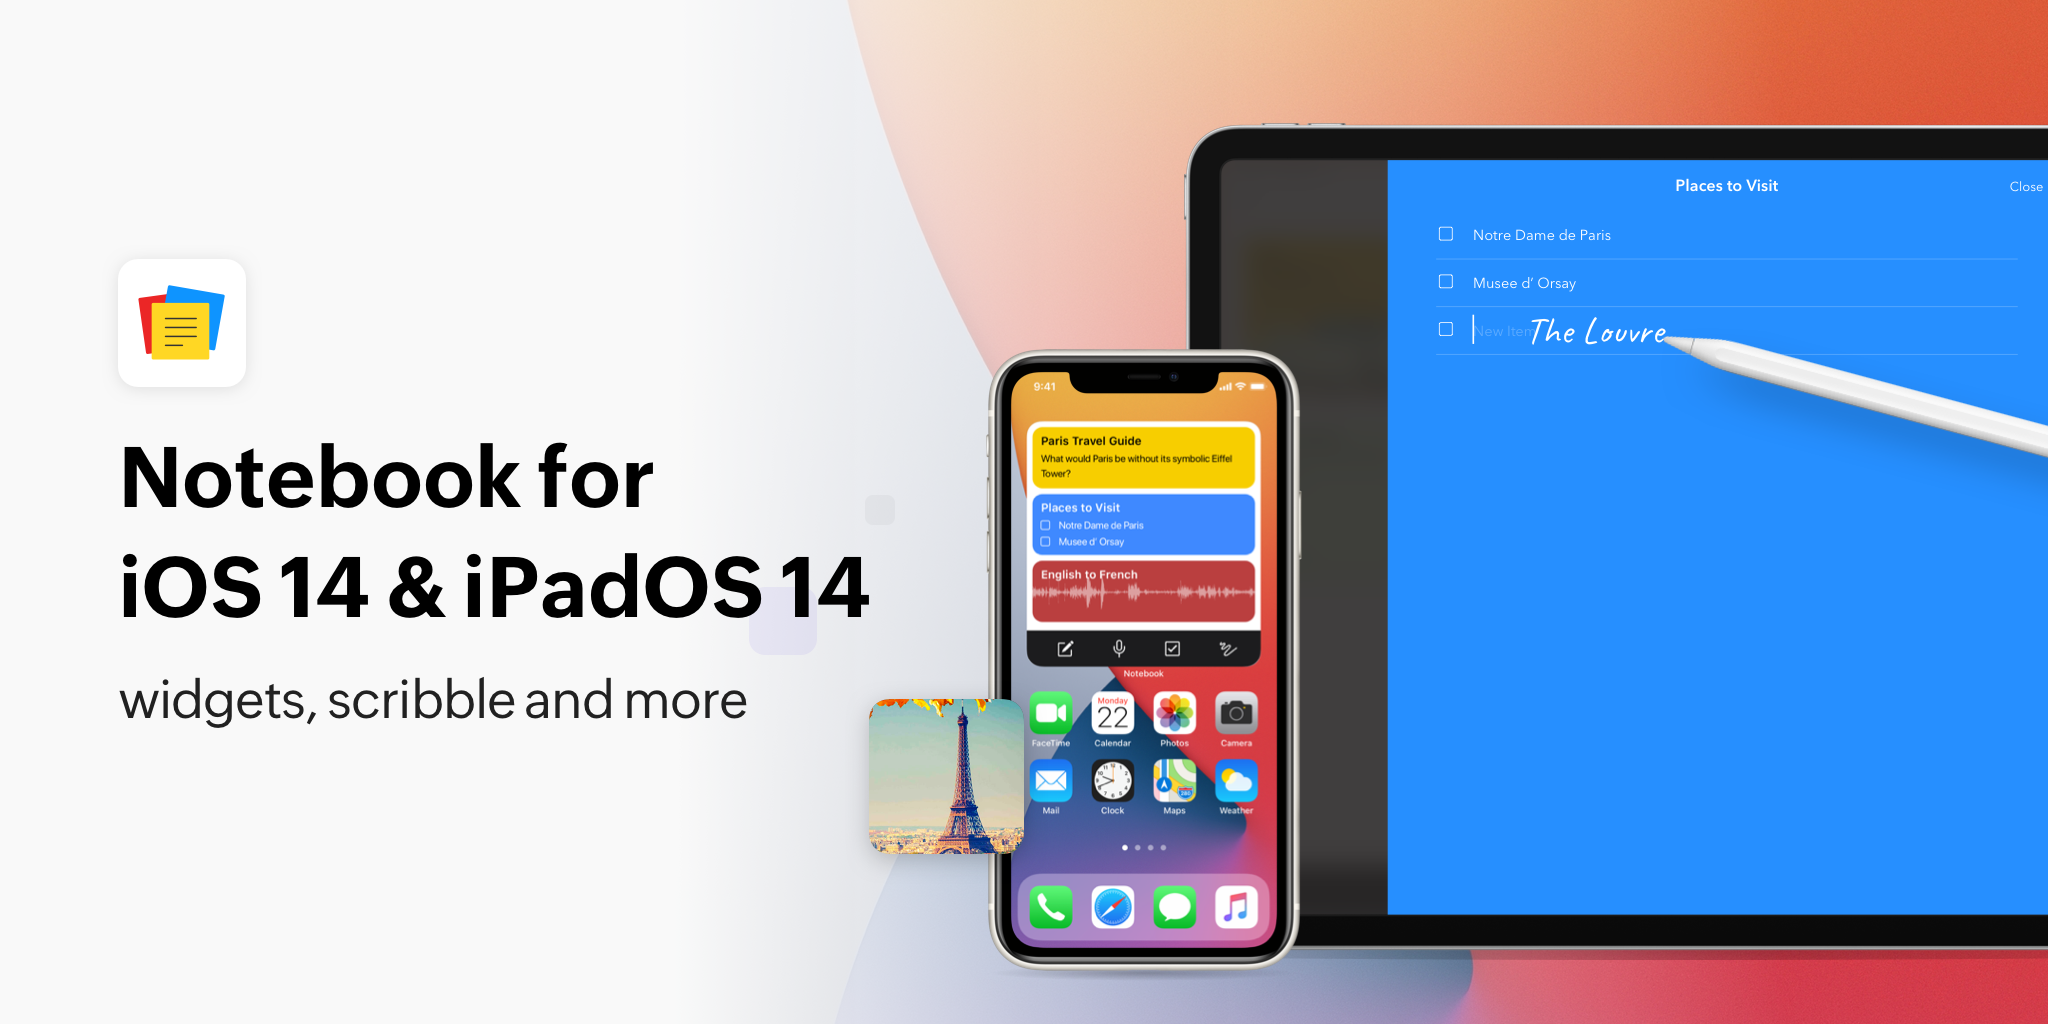 Notebook for iOS 14 and iPadOS 14: Widgets, Scribble, and more